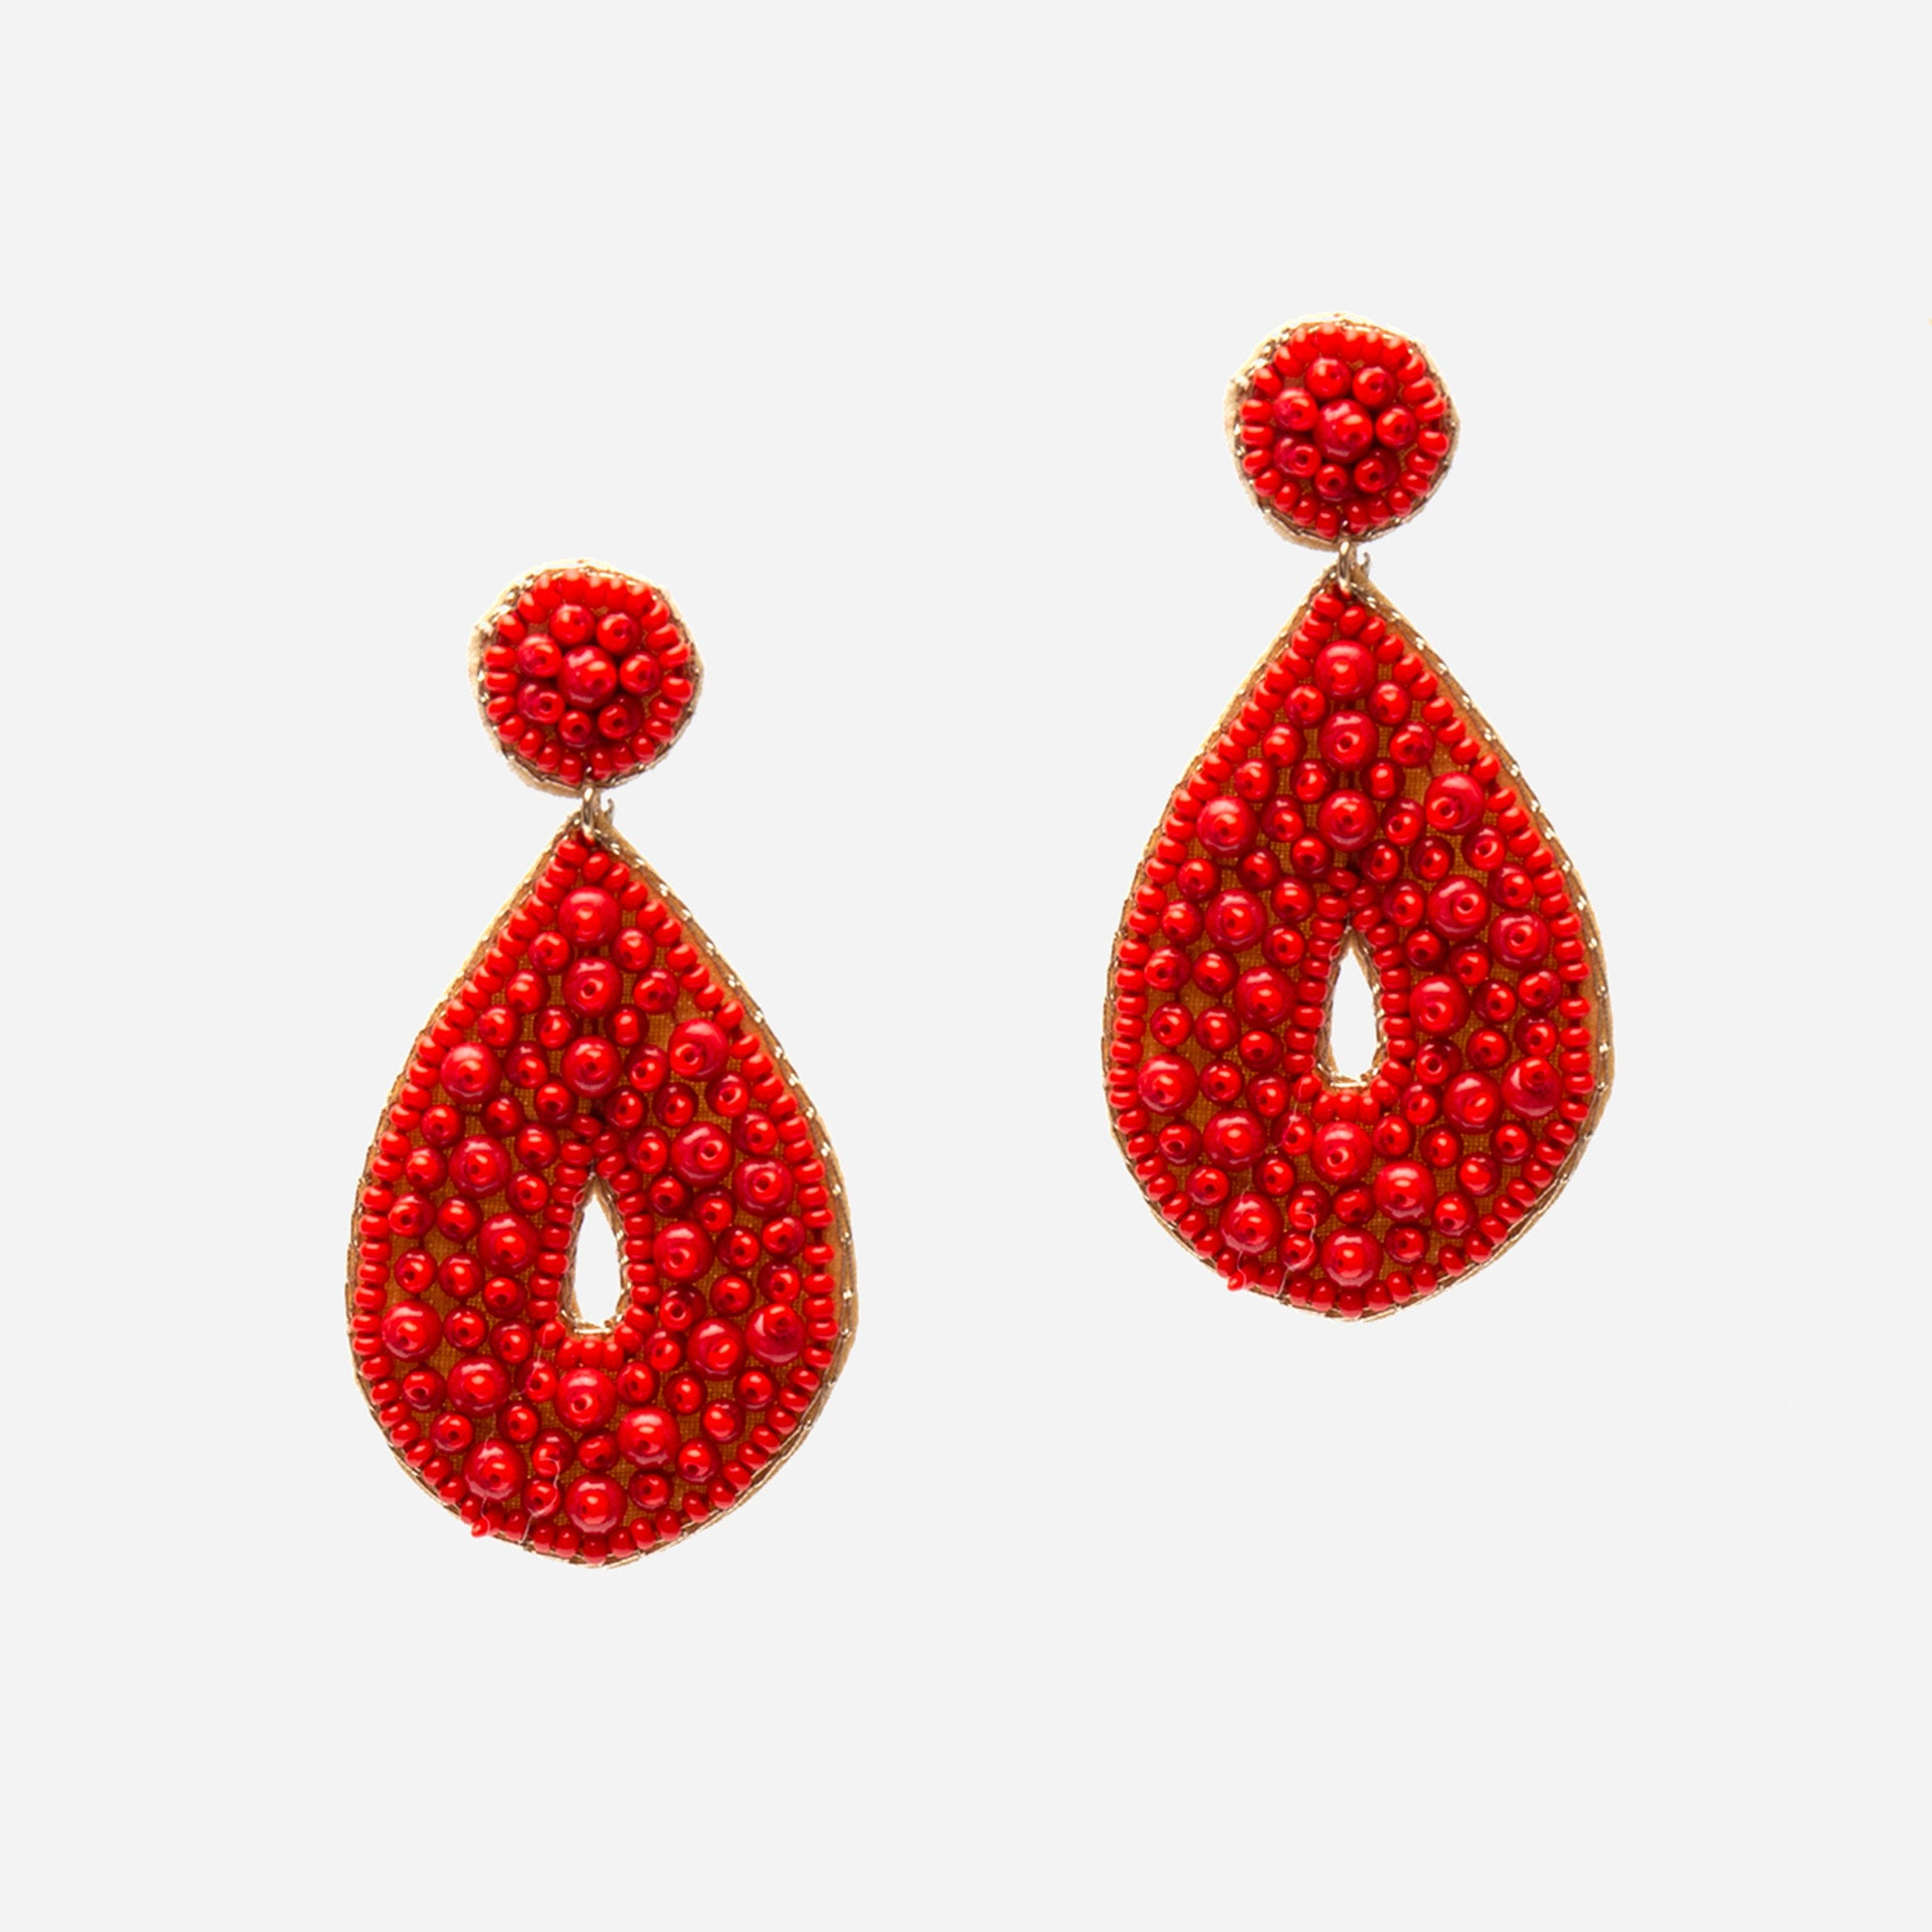 Cozumel Beaded Earrings - Frances Valentine